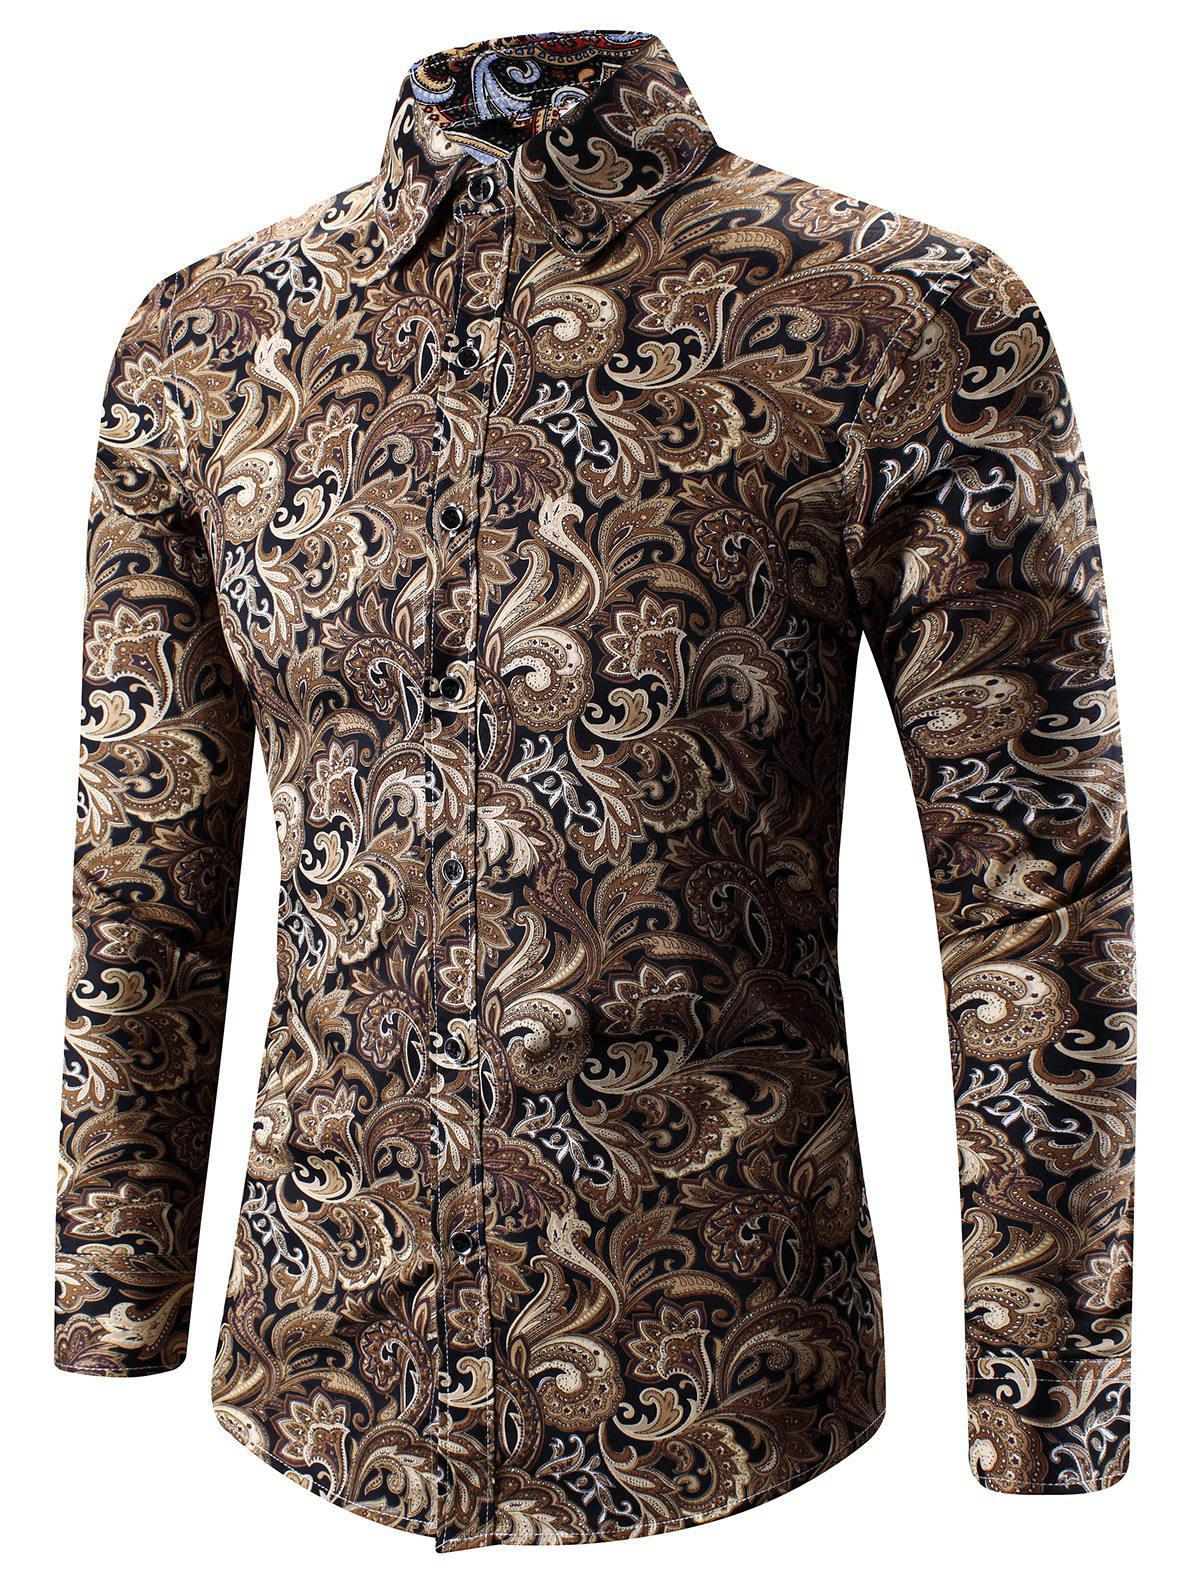 Store Turn-Down Collar 3D Paisley Print Long Sleeve Shirt